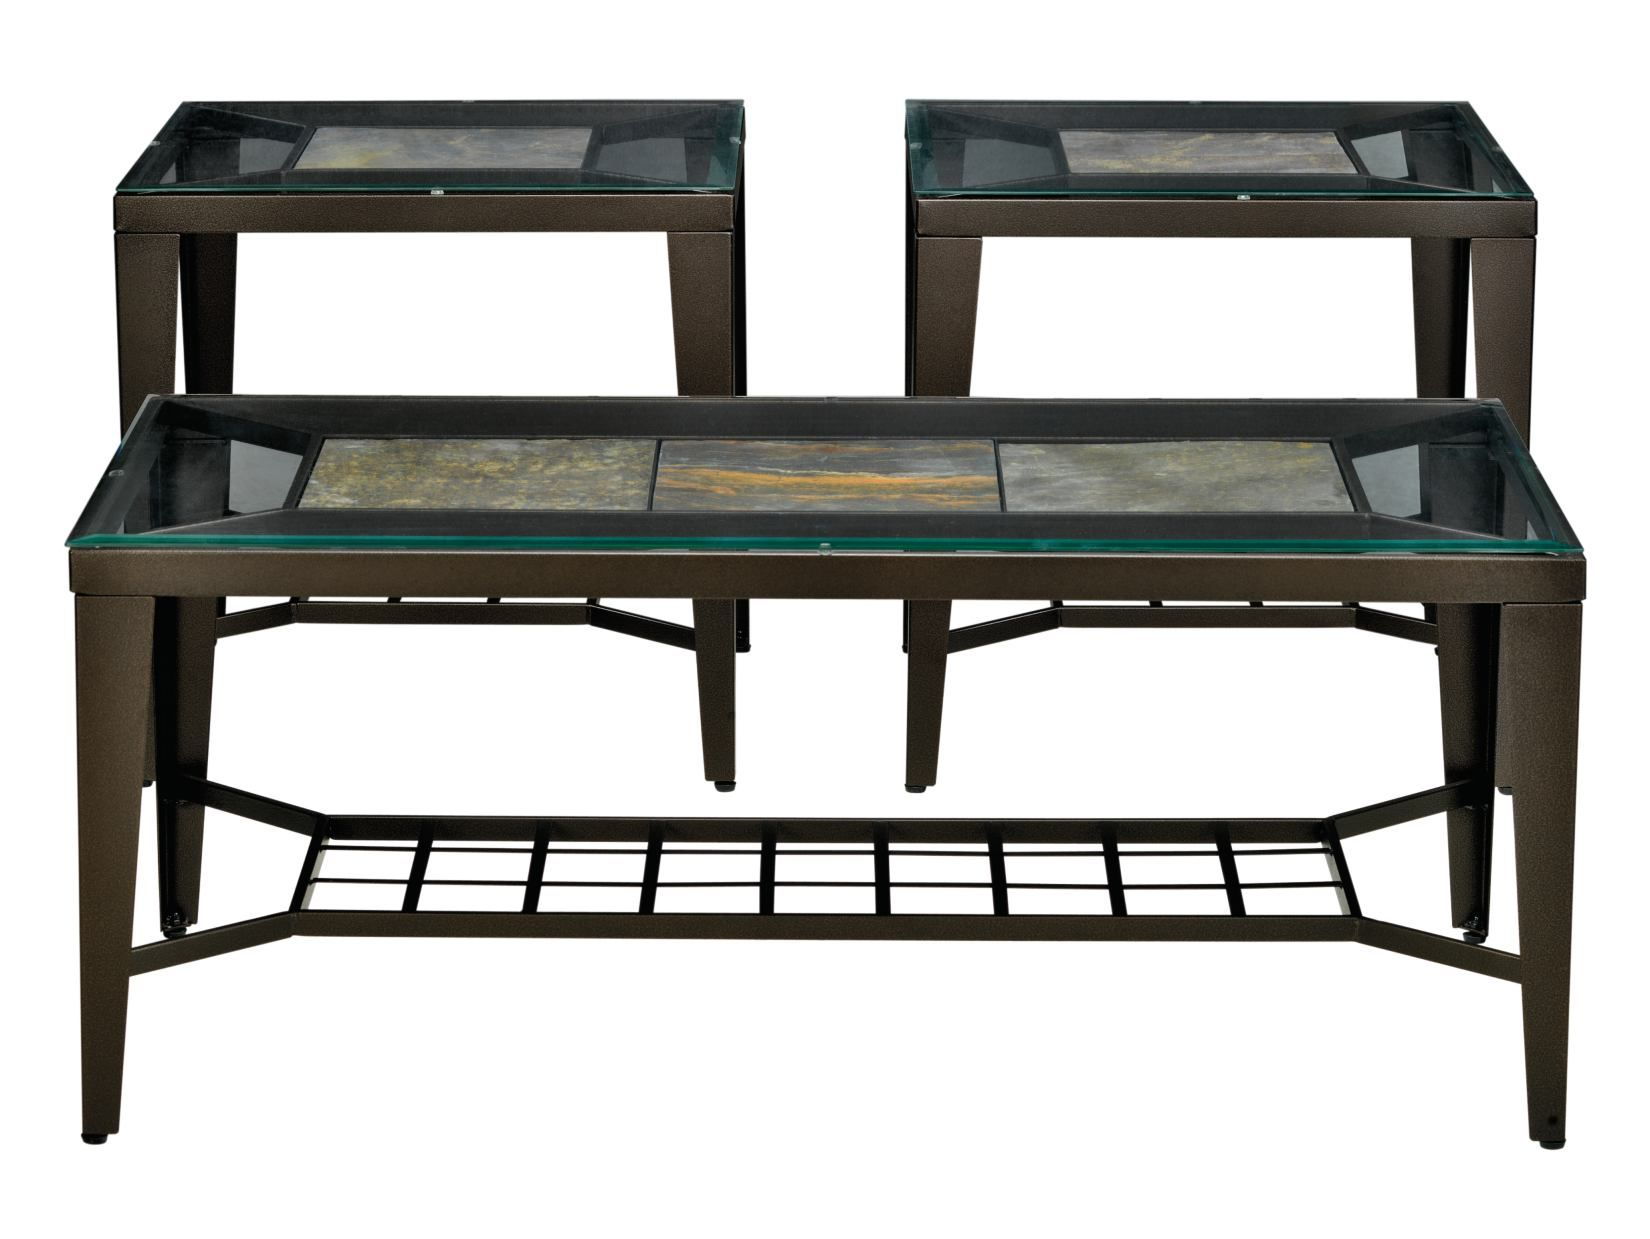 Slate Canyon 3 PC Table Set Value City Furniture